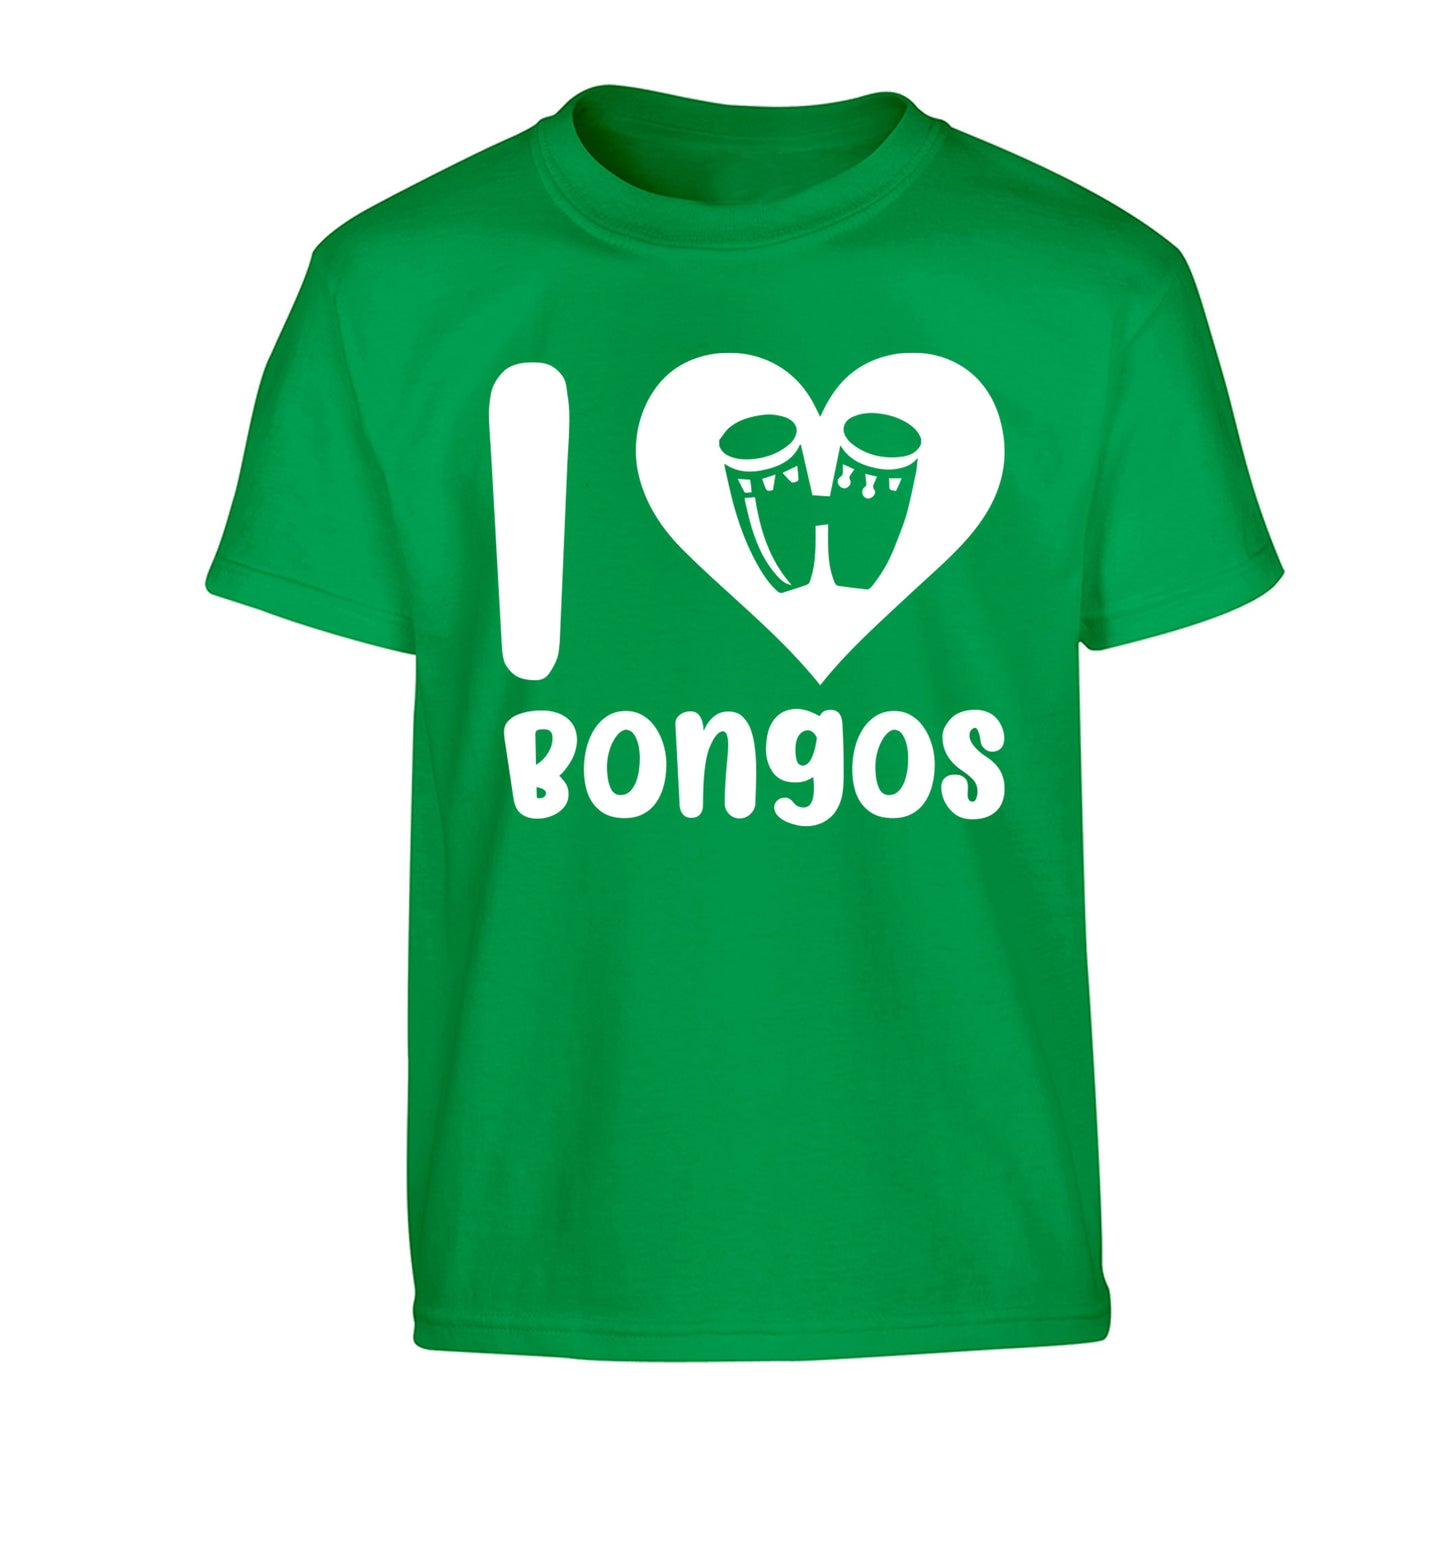 I love bongos Children's green Tshirt 12-14 Years